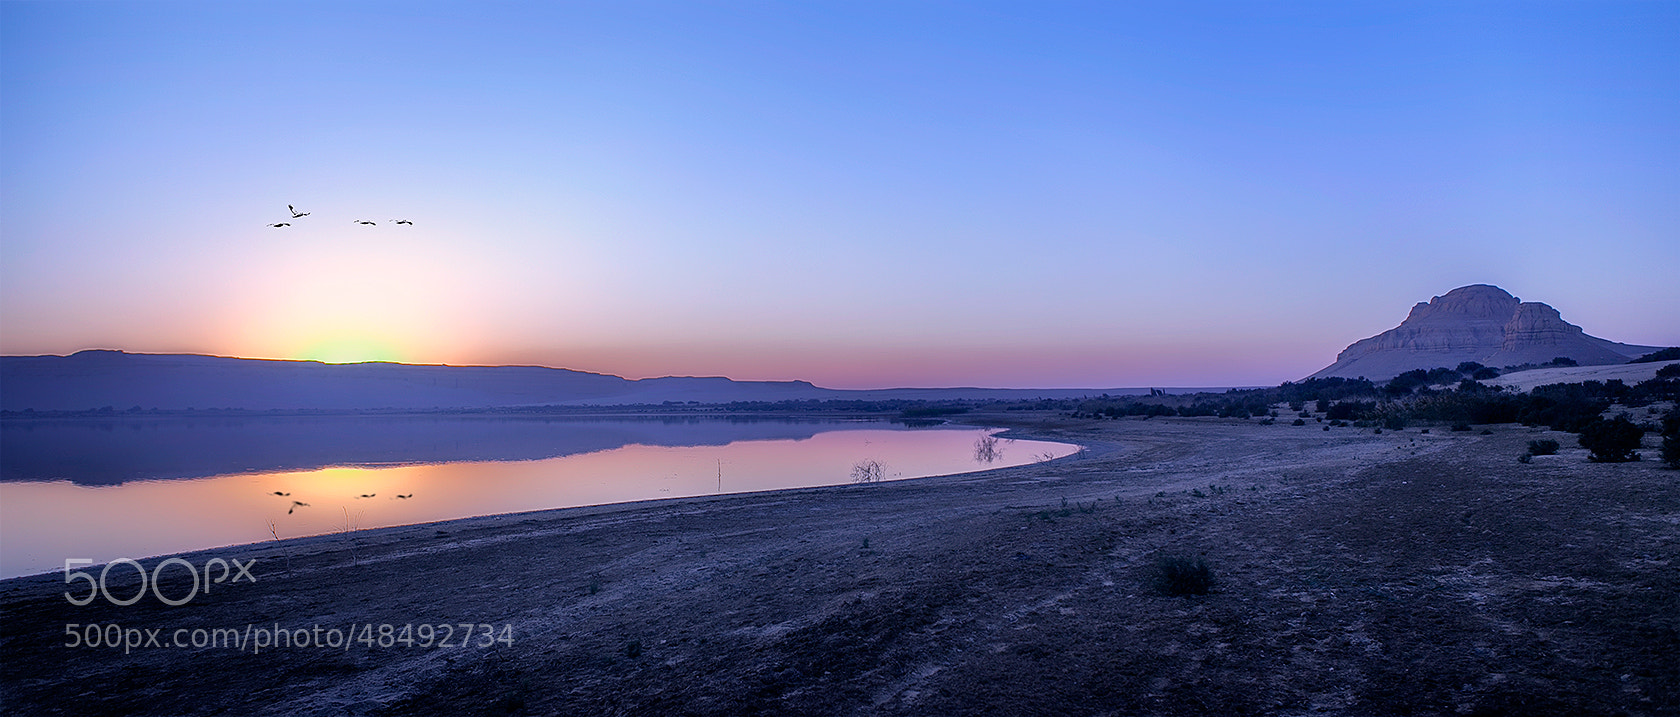 Photograph Sunset over the lake ... by Ahmed Abdulazim on 500px